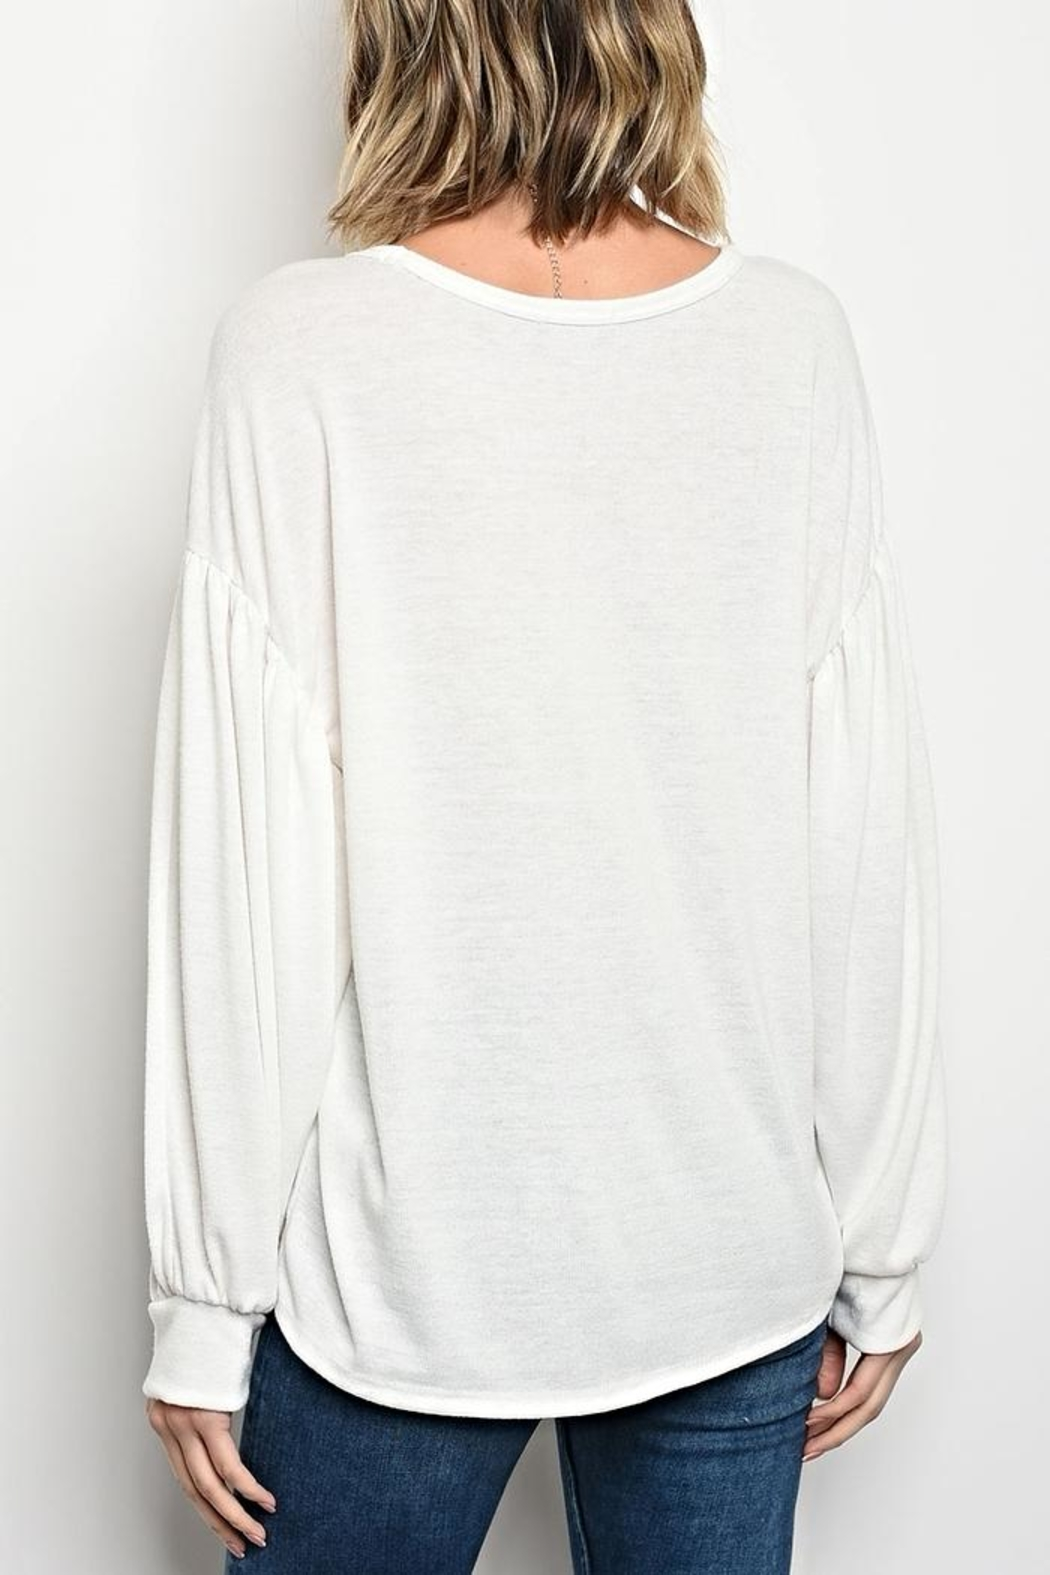 Sweet Claire White Button Sweater - Front Full Image